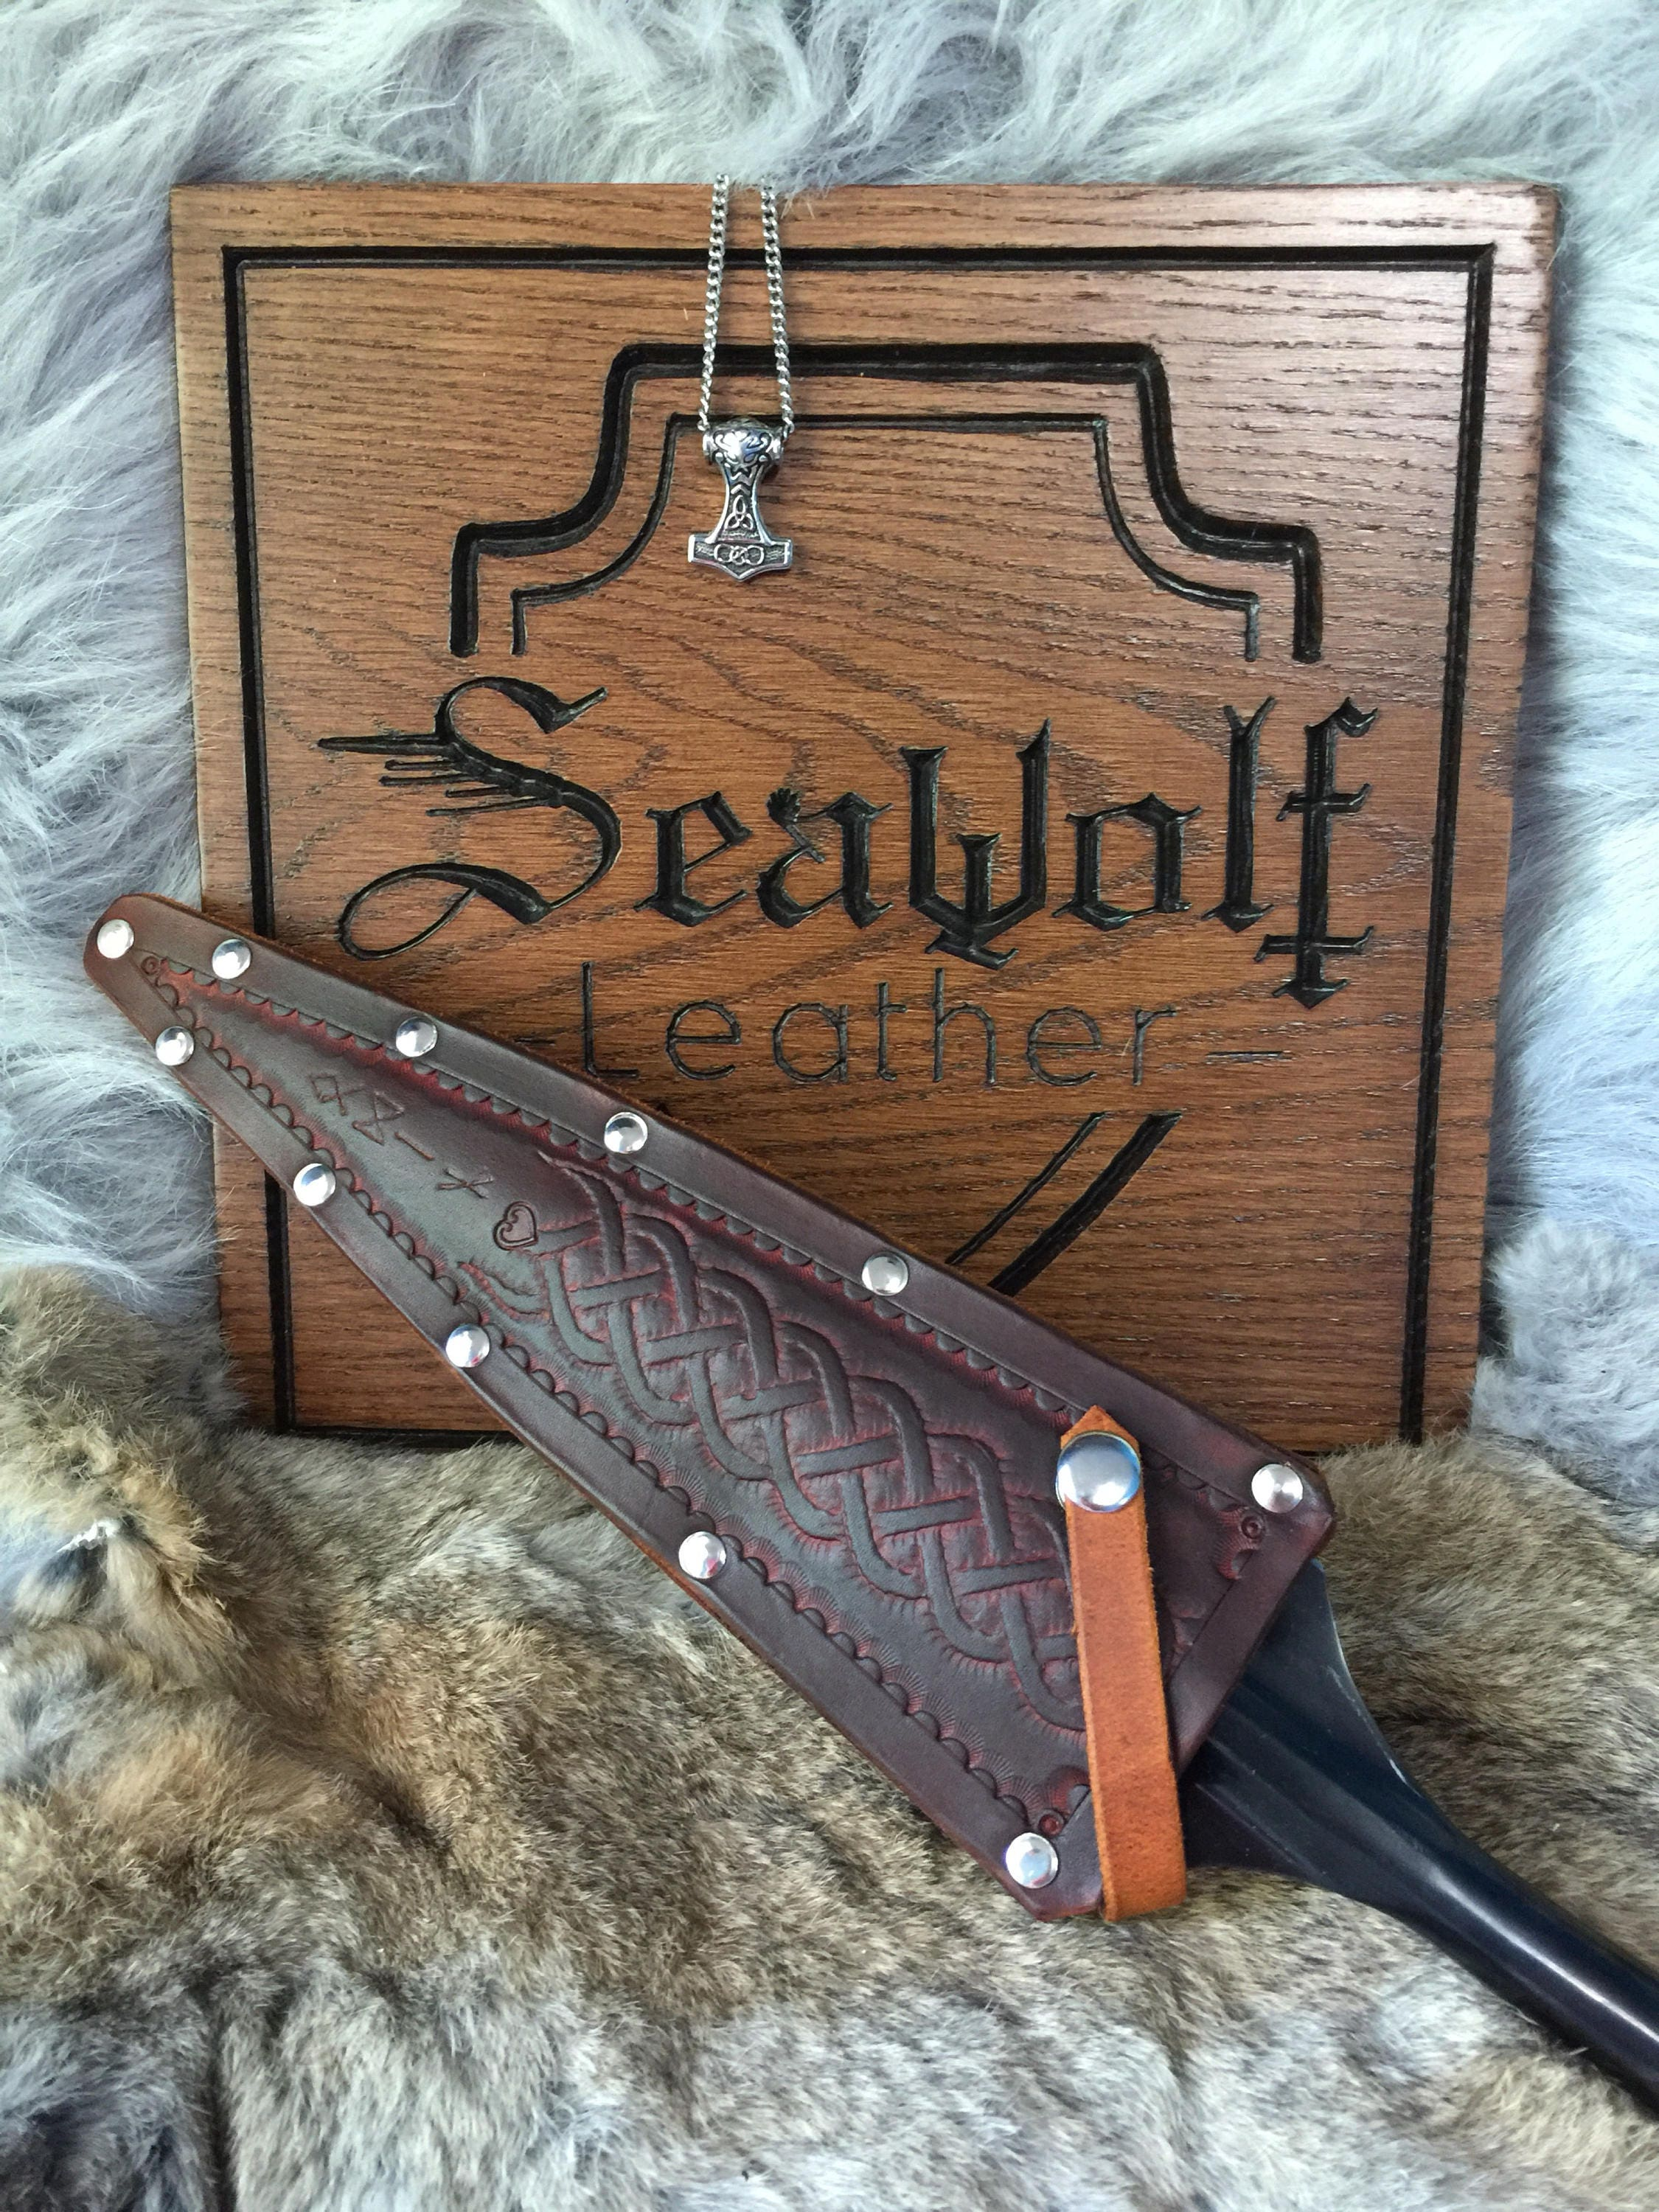 Cold Steel medieval spear, boar spear, lance, leather cover, Viking